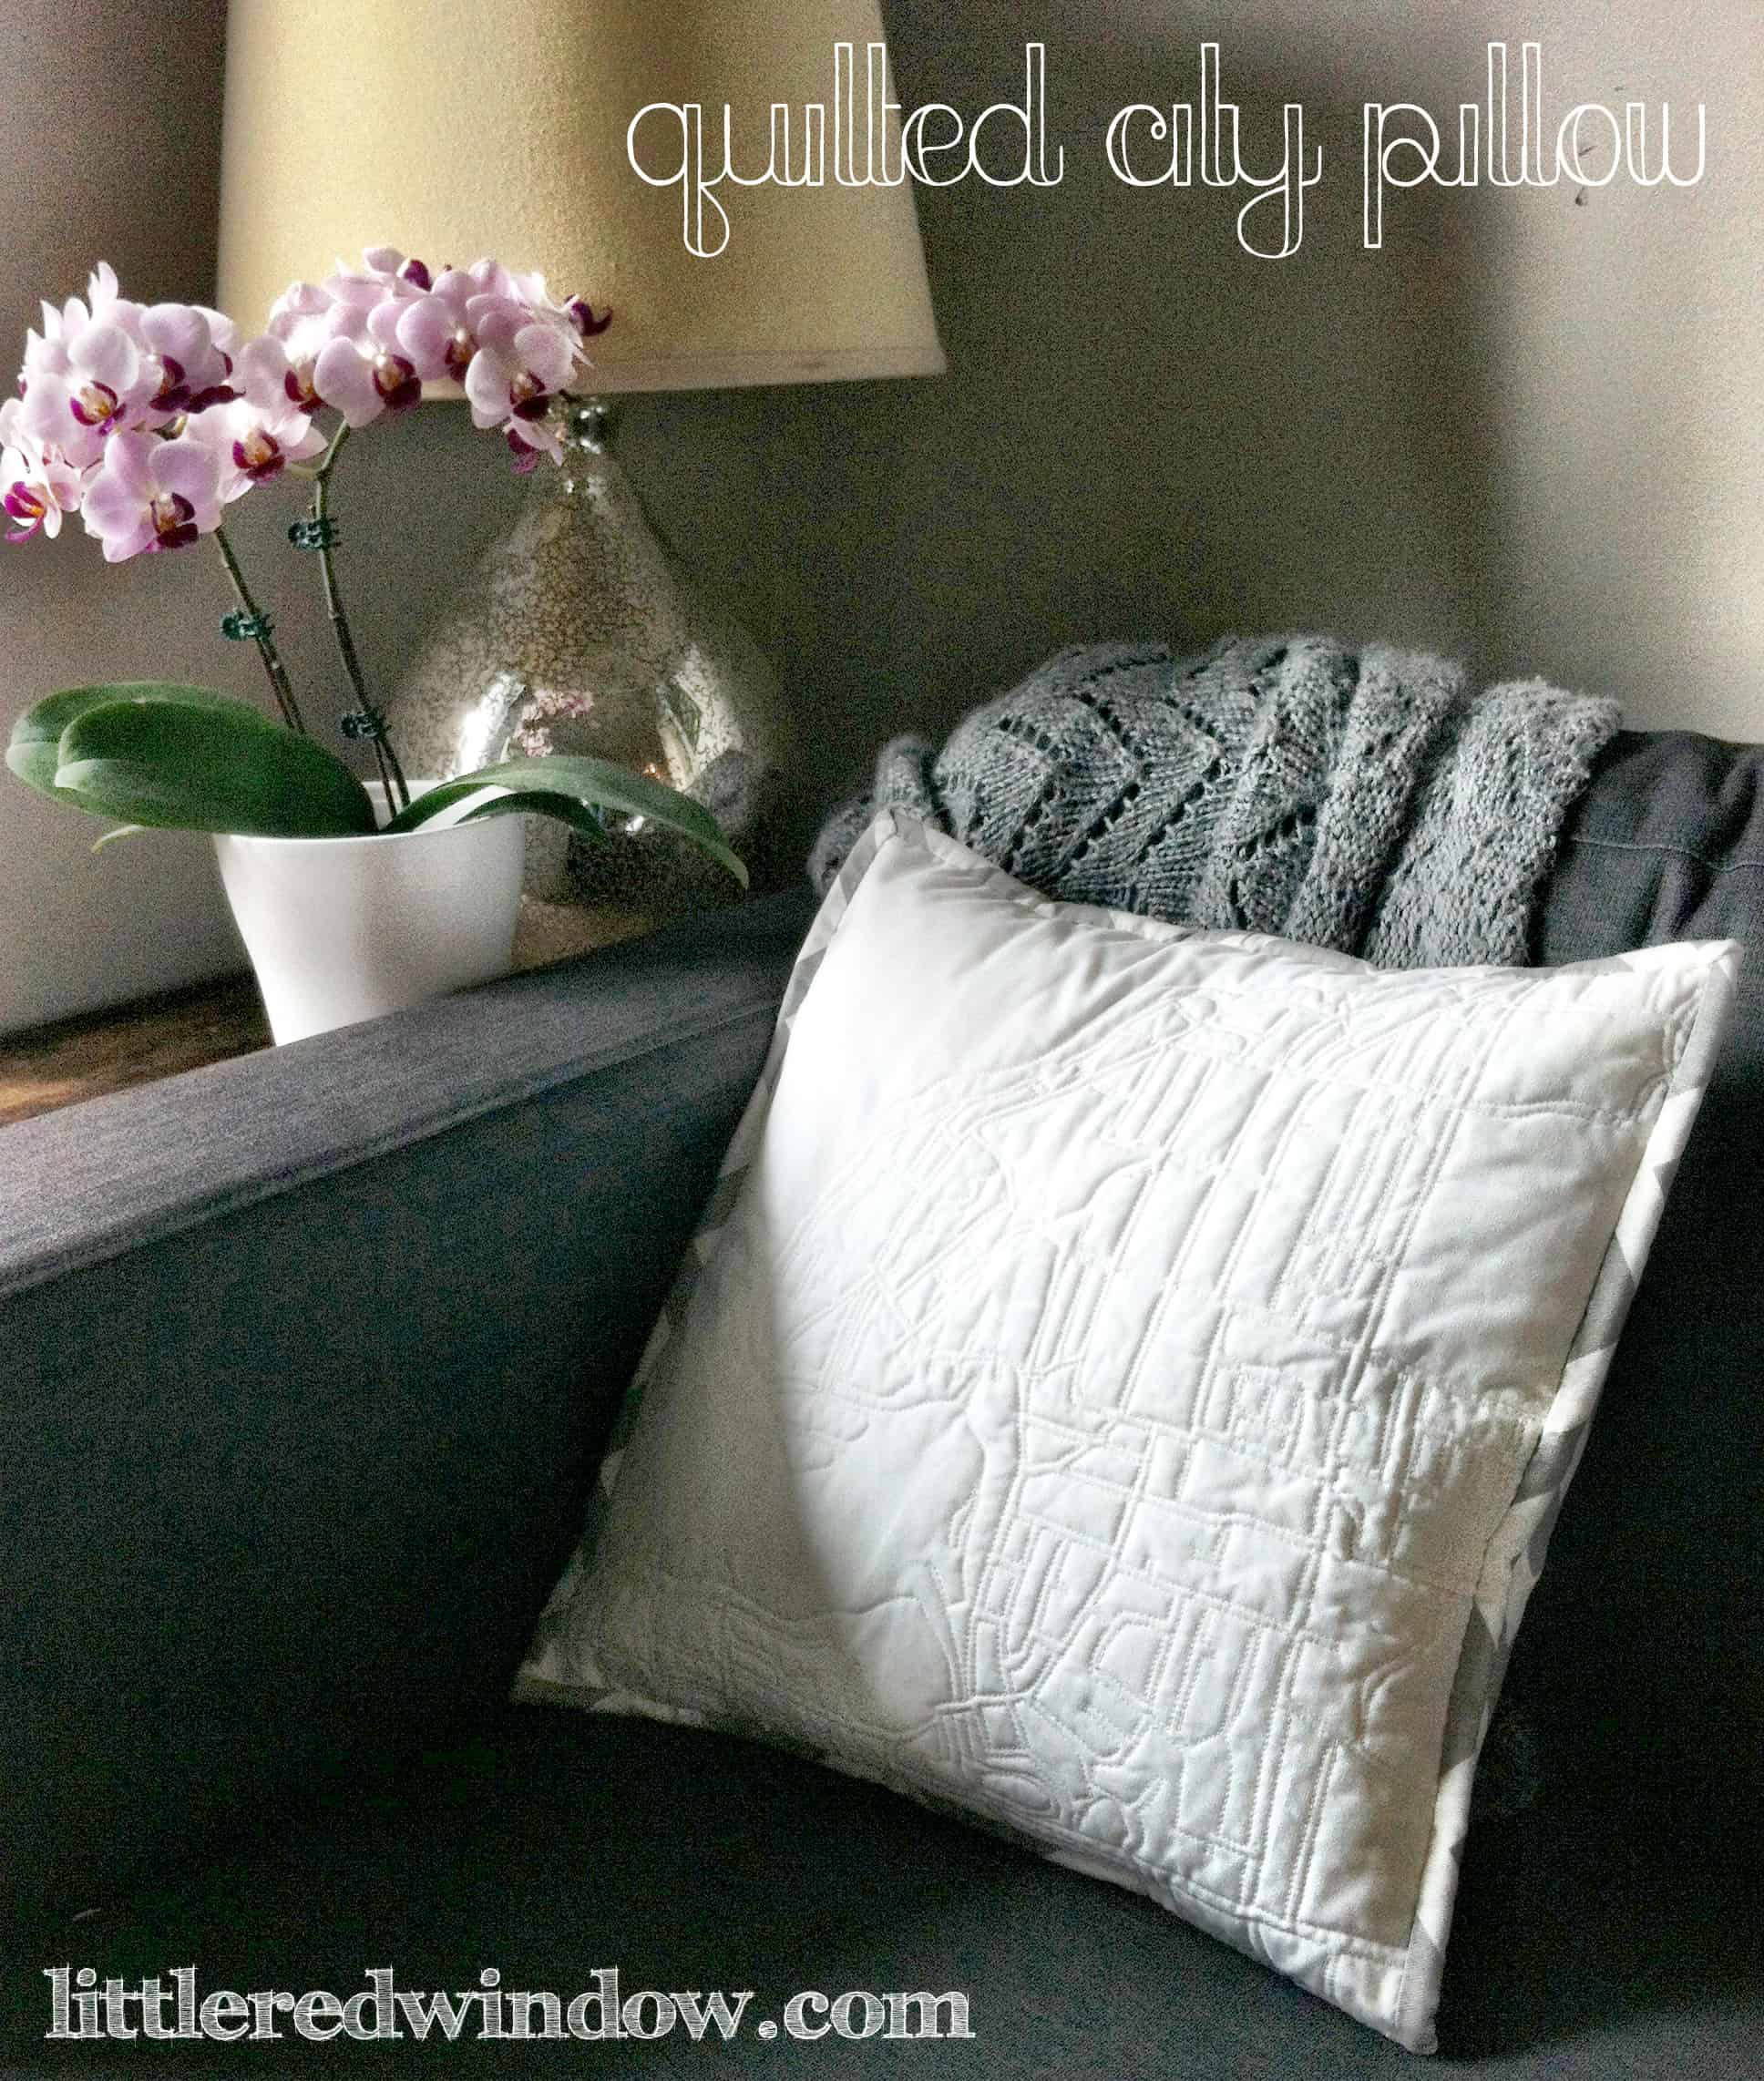 Quilted city pillow in the corner of a couch next to a lamp and orchid